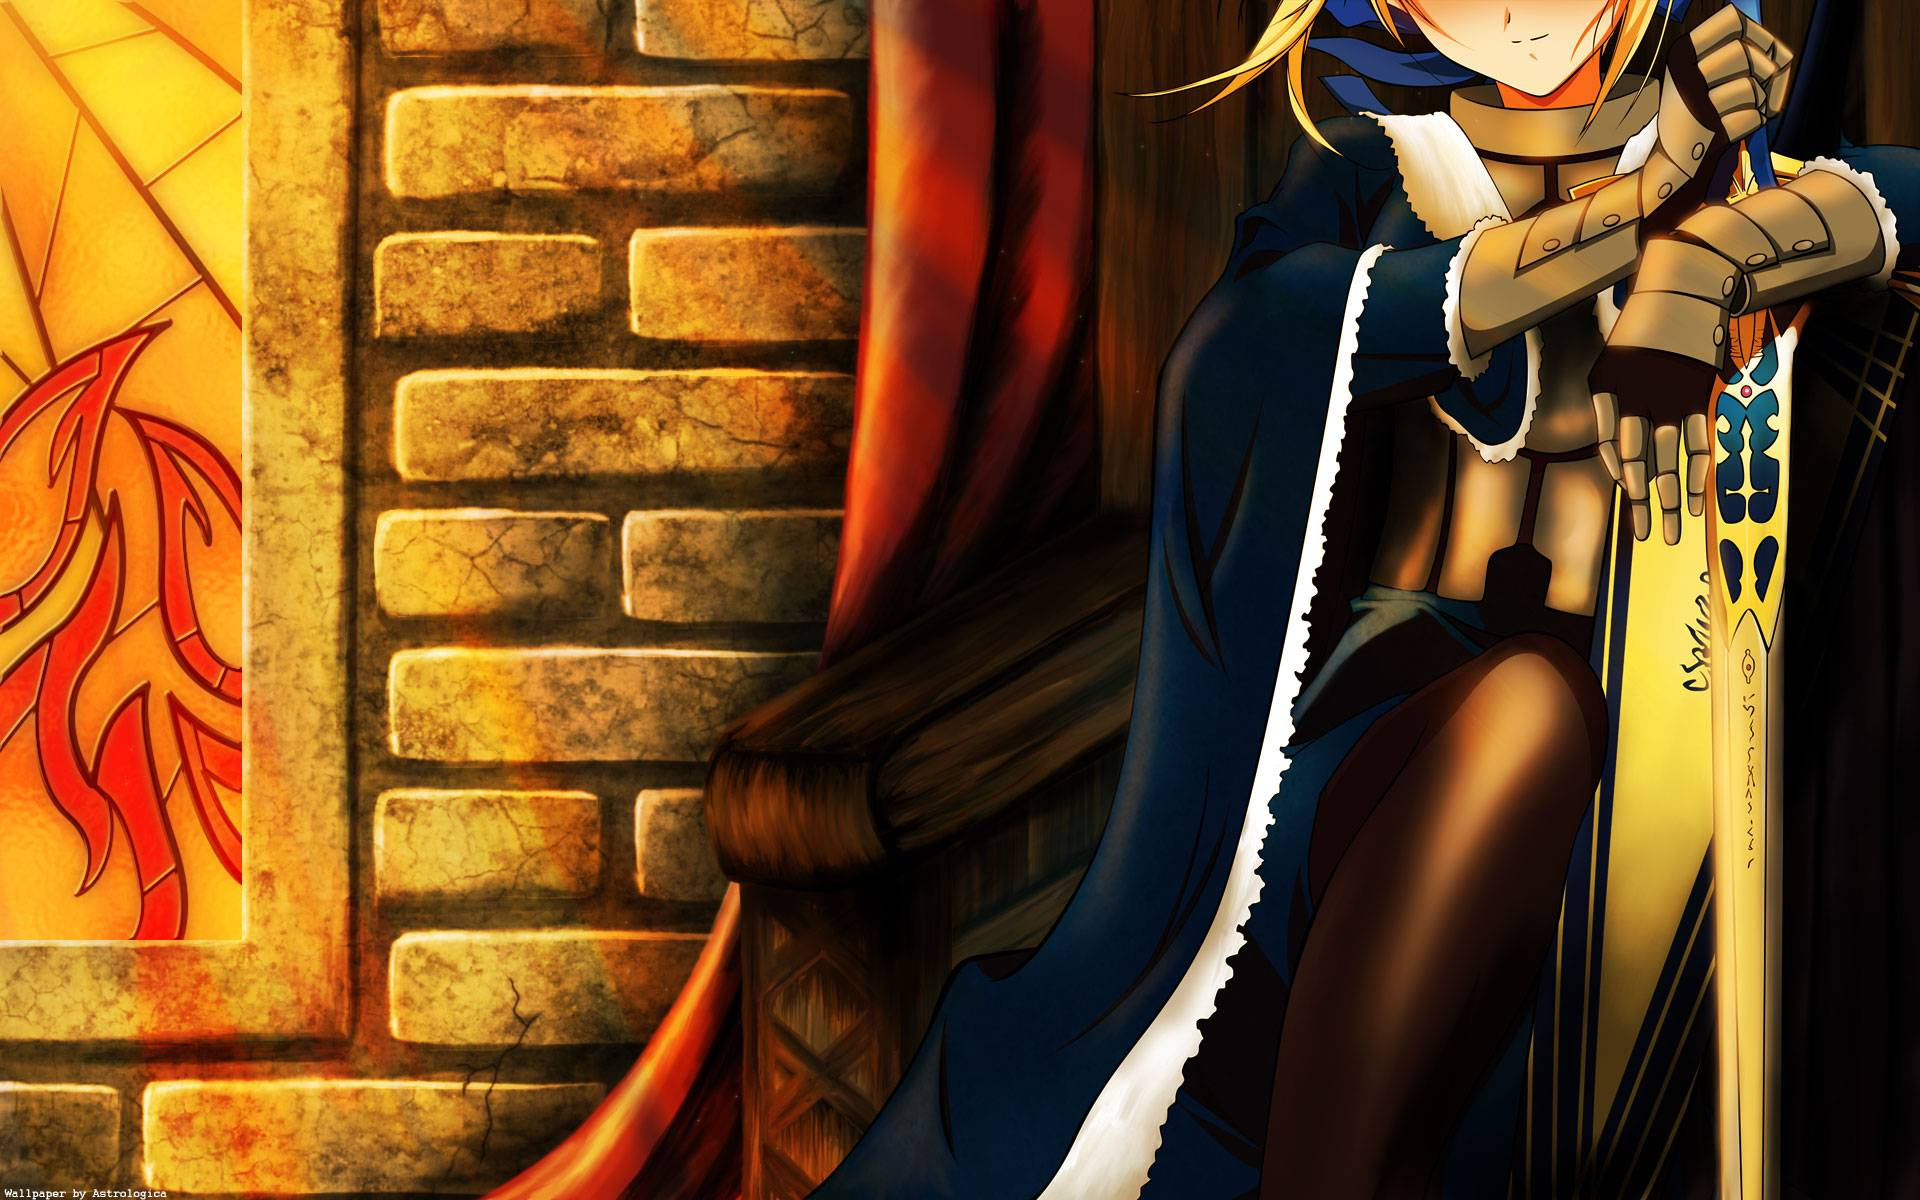 Fate Stay Night Wallpaper Saber 8 Desktop Wallpaper